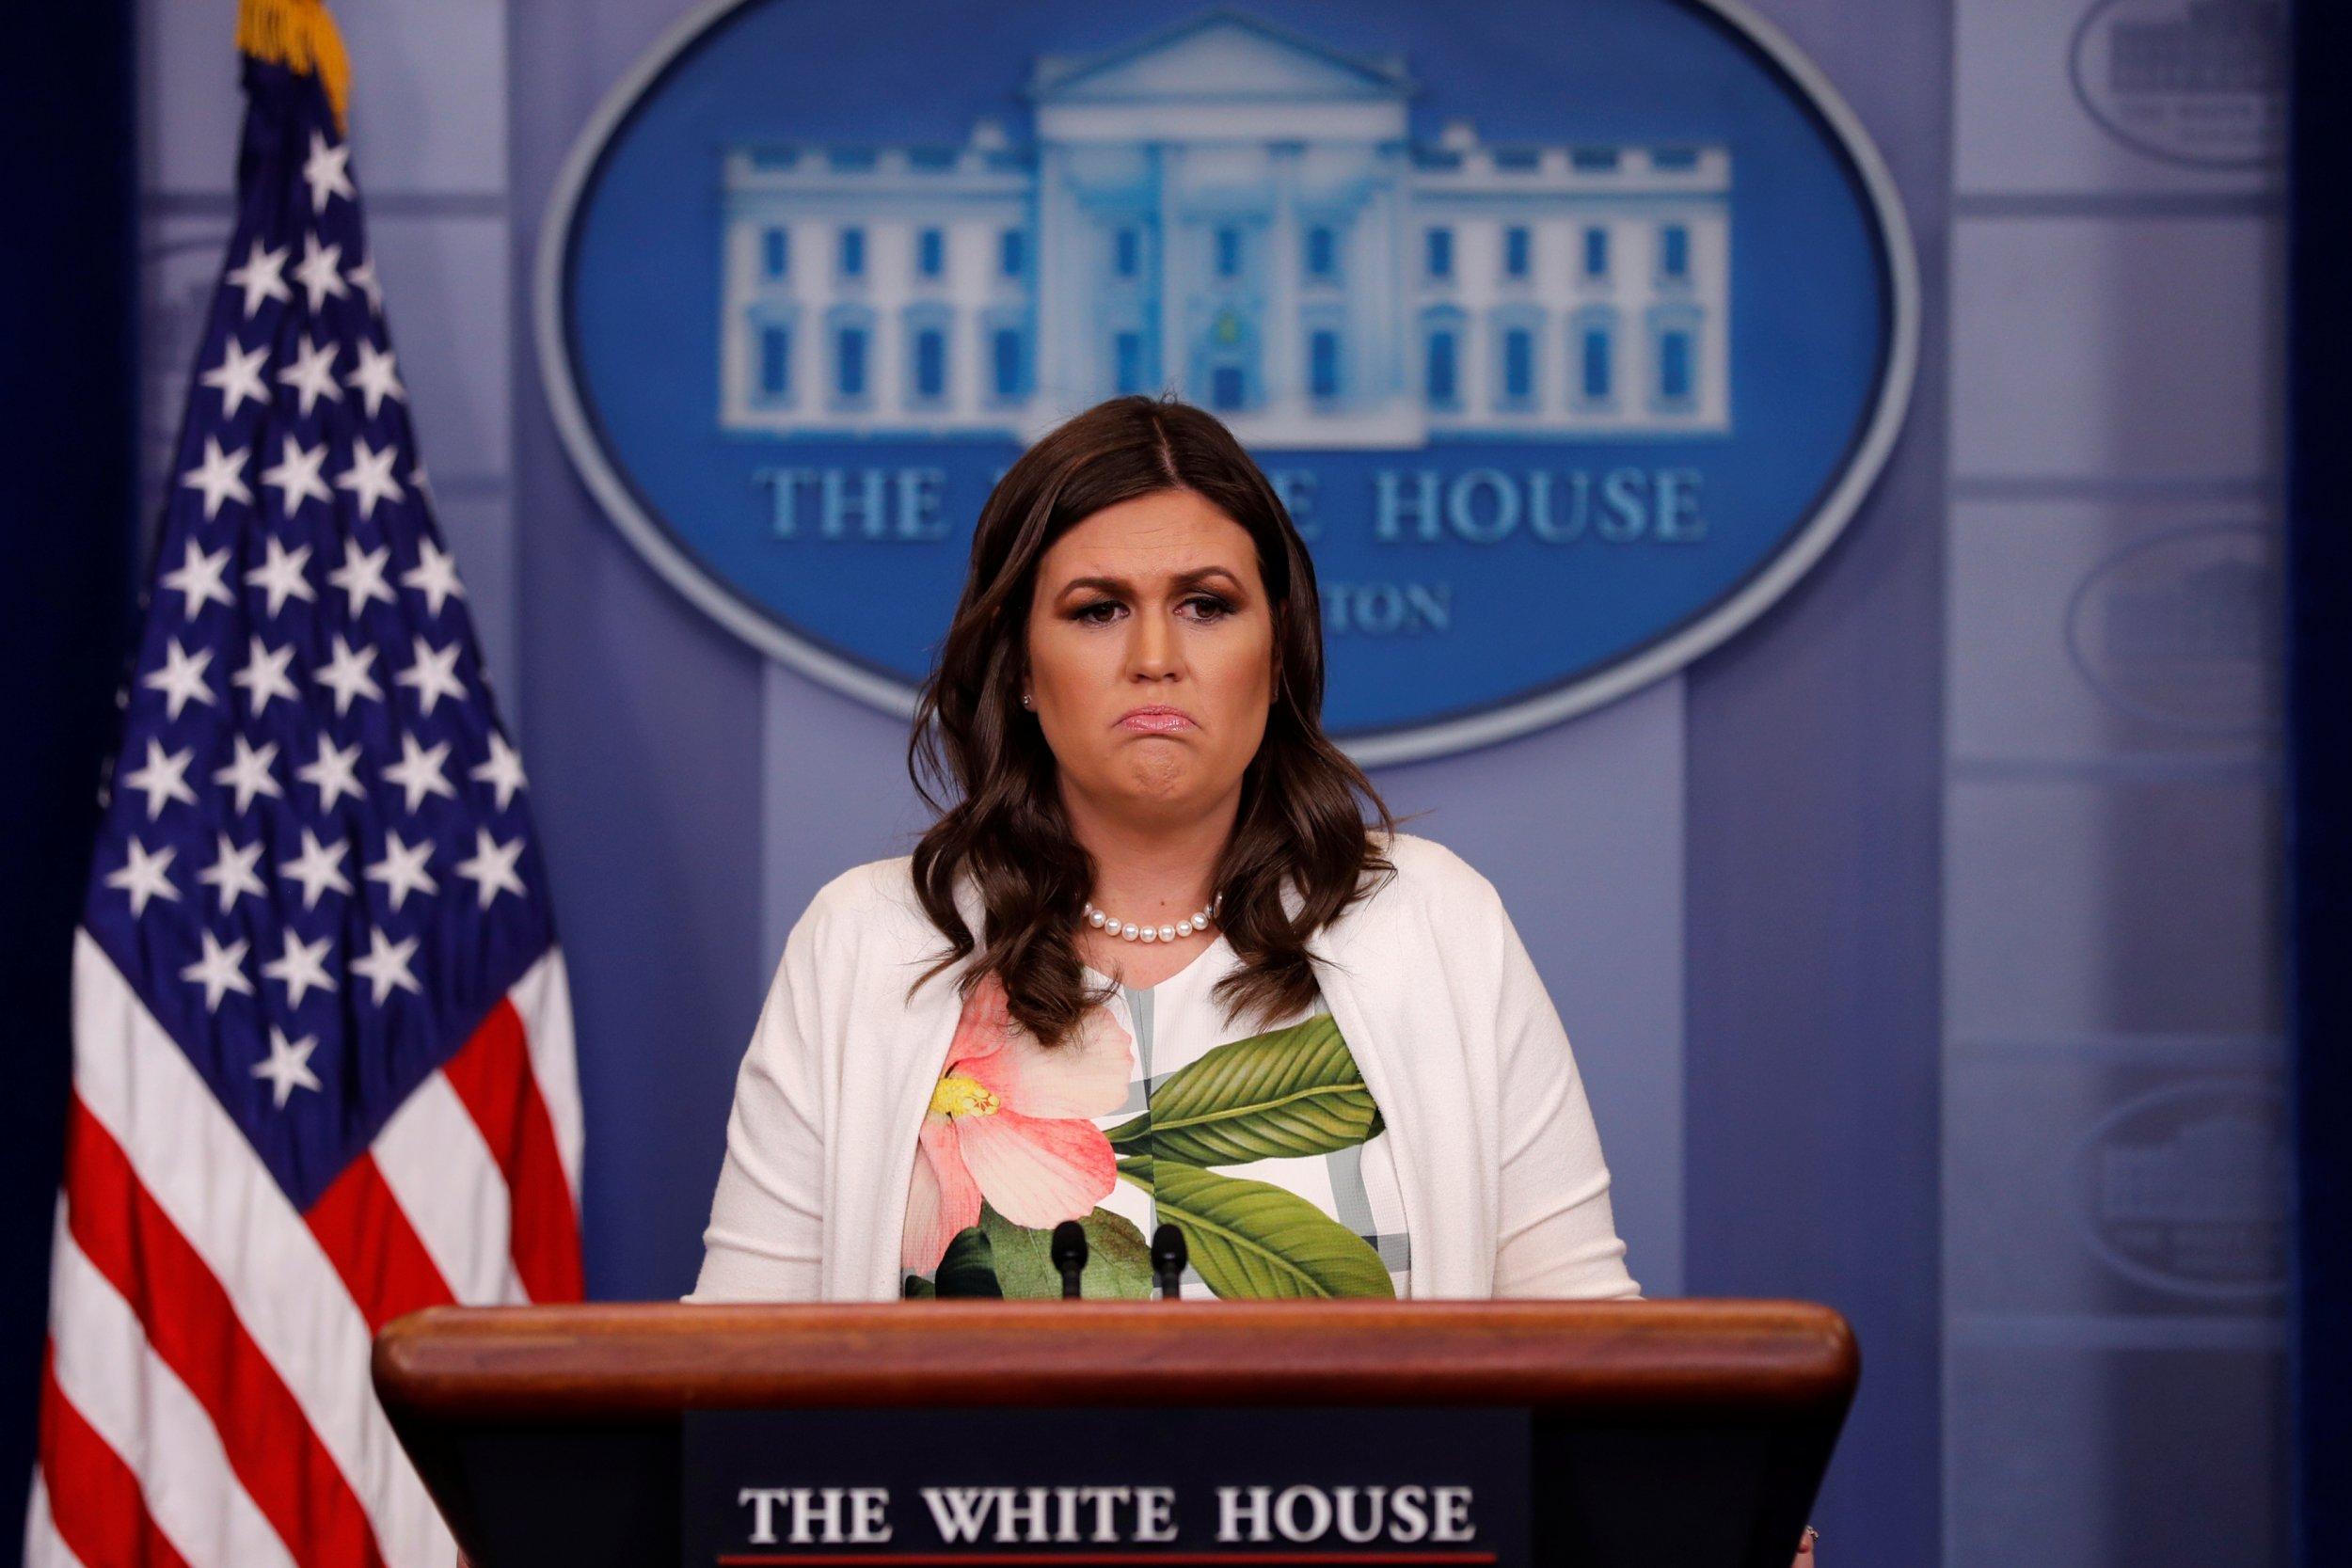 Sarah Huckabee Sanders Is a 'Liar' Who Spews 'Horseshit ...